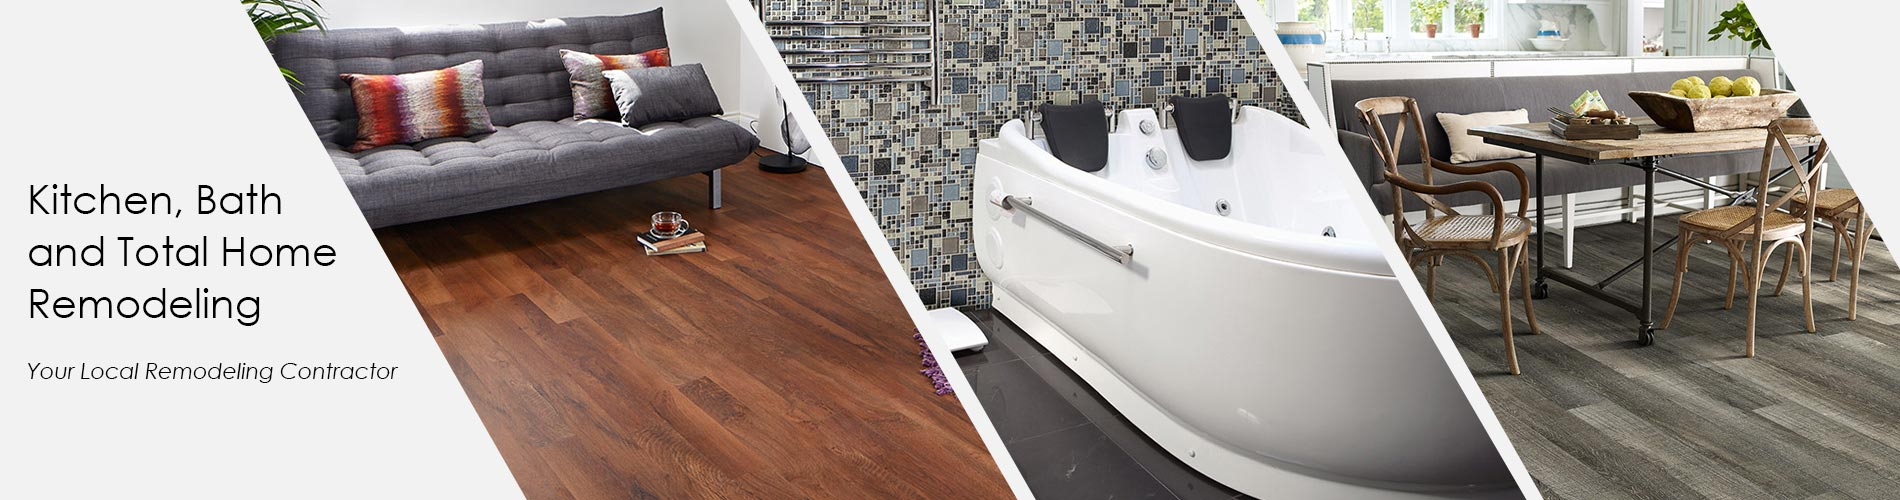 American Carpet & Flooring in Torrance is your one stop kitchen, bath & total home remodeling contractor